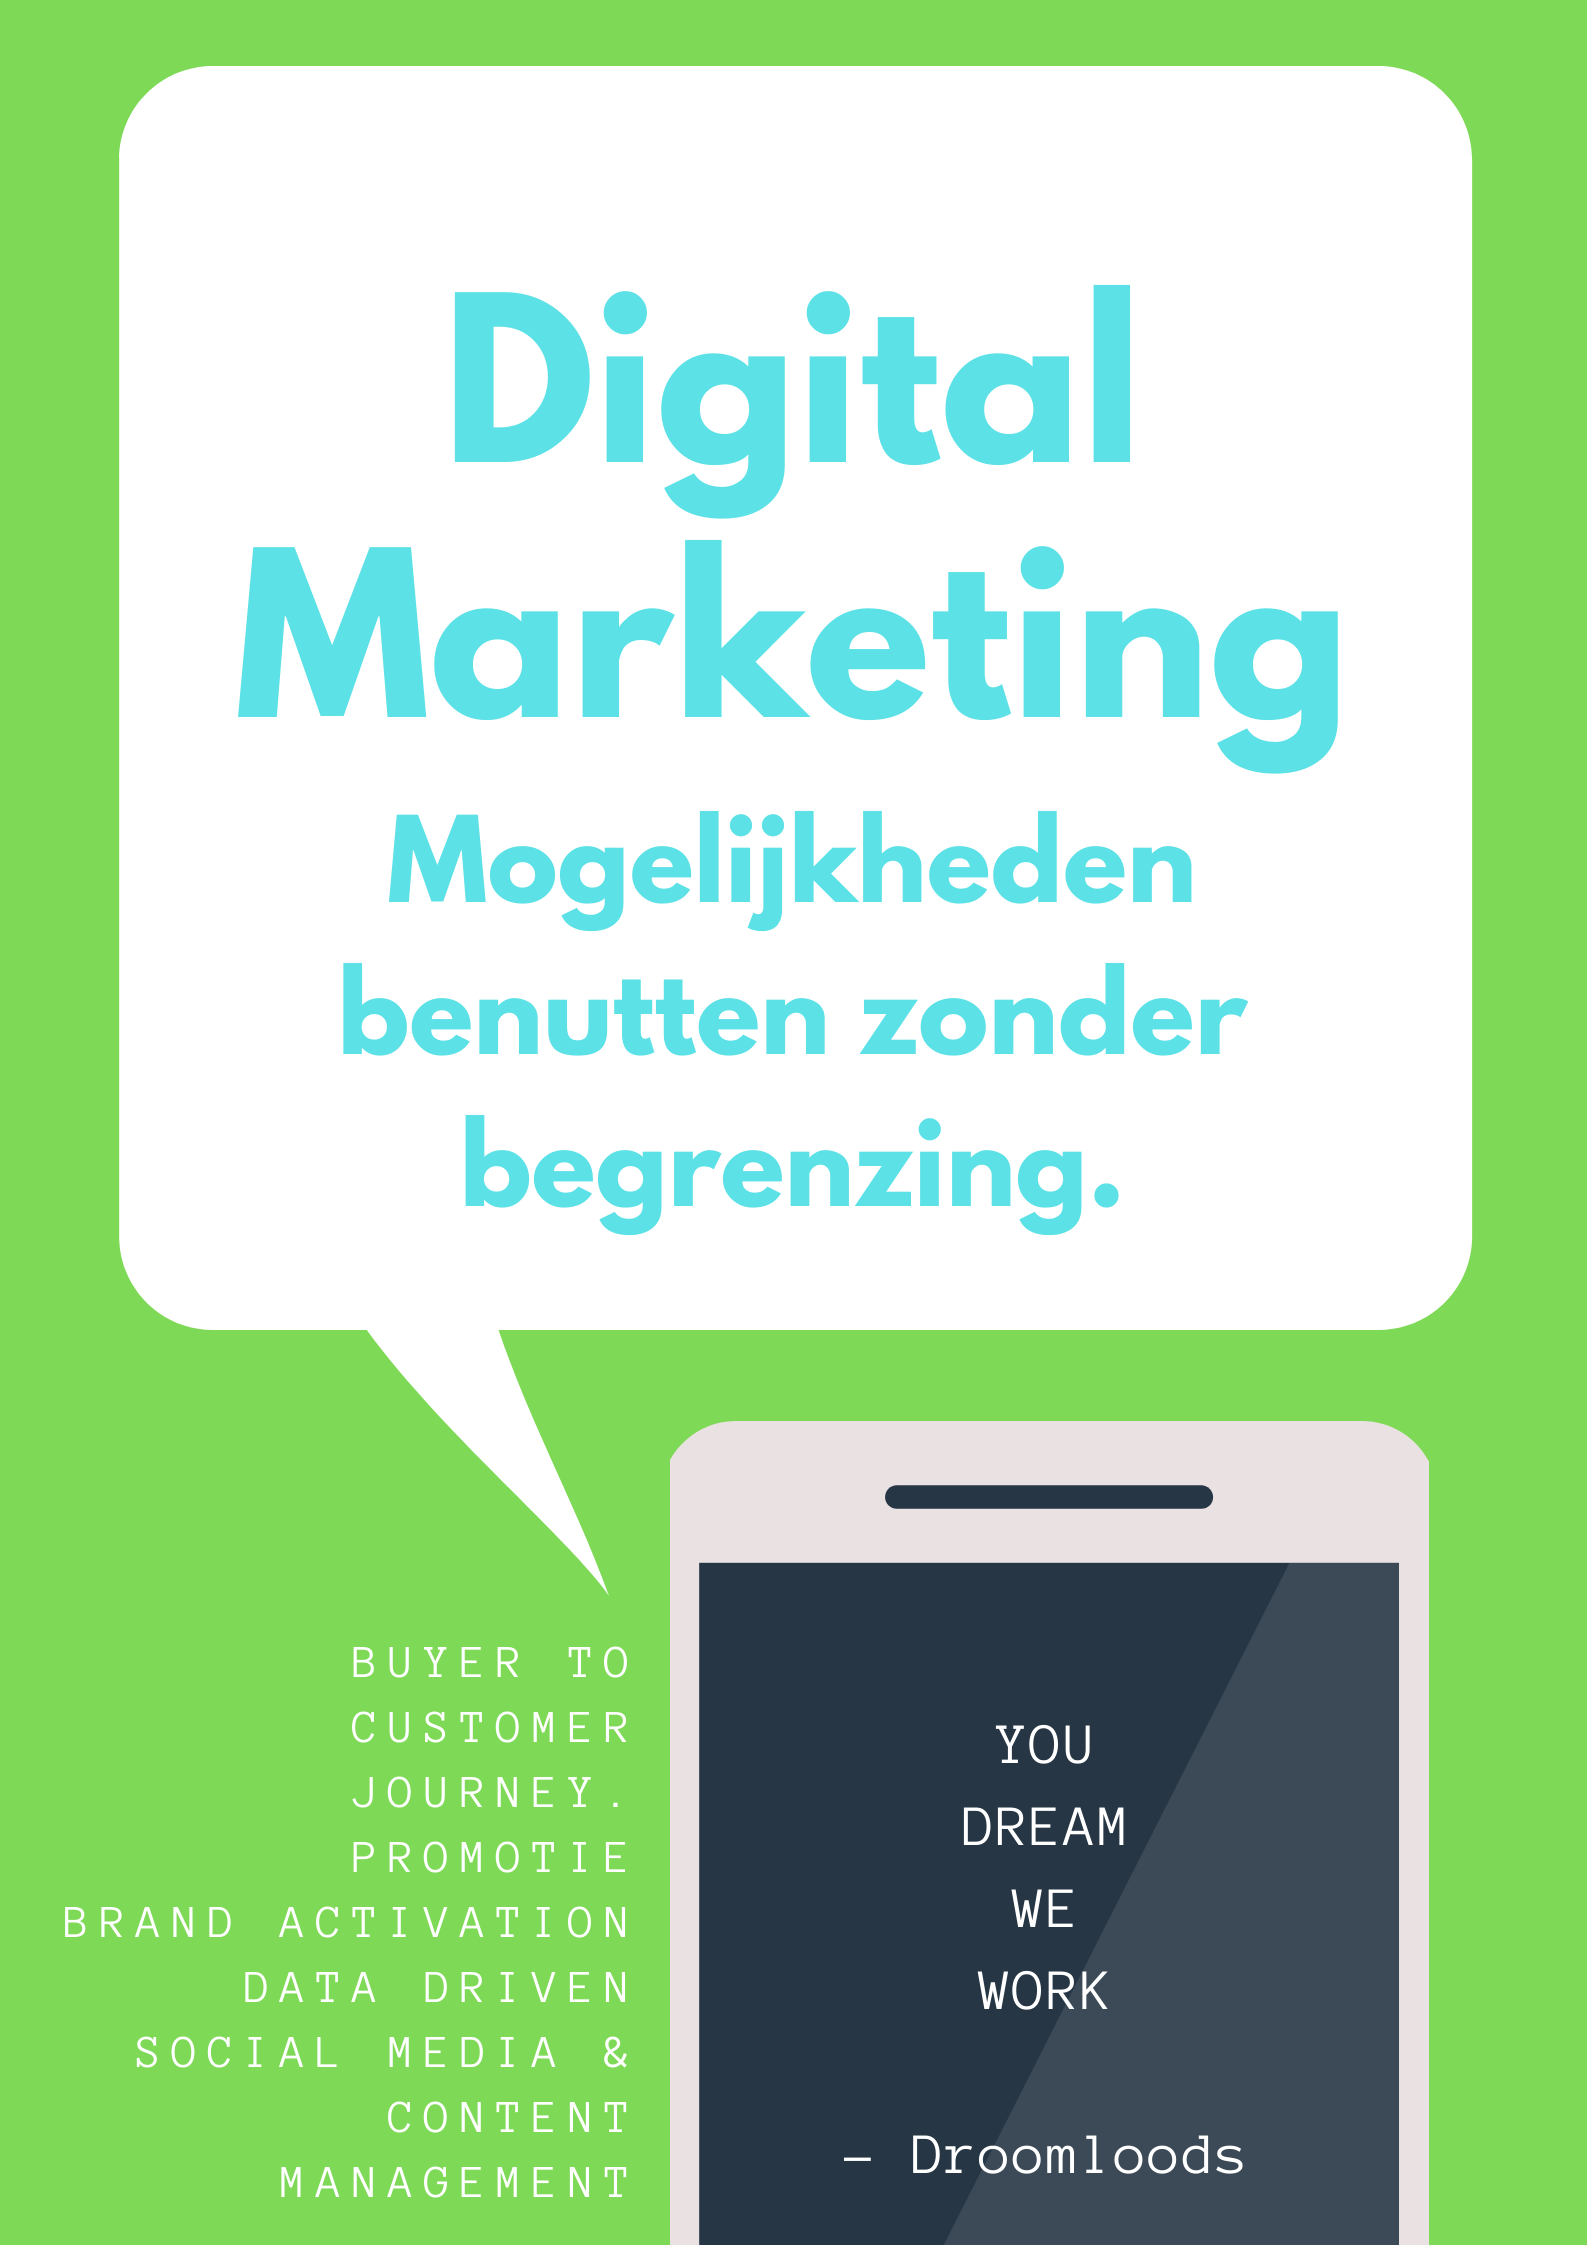 Digital marketing droomloods